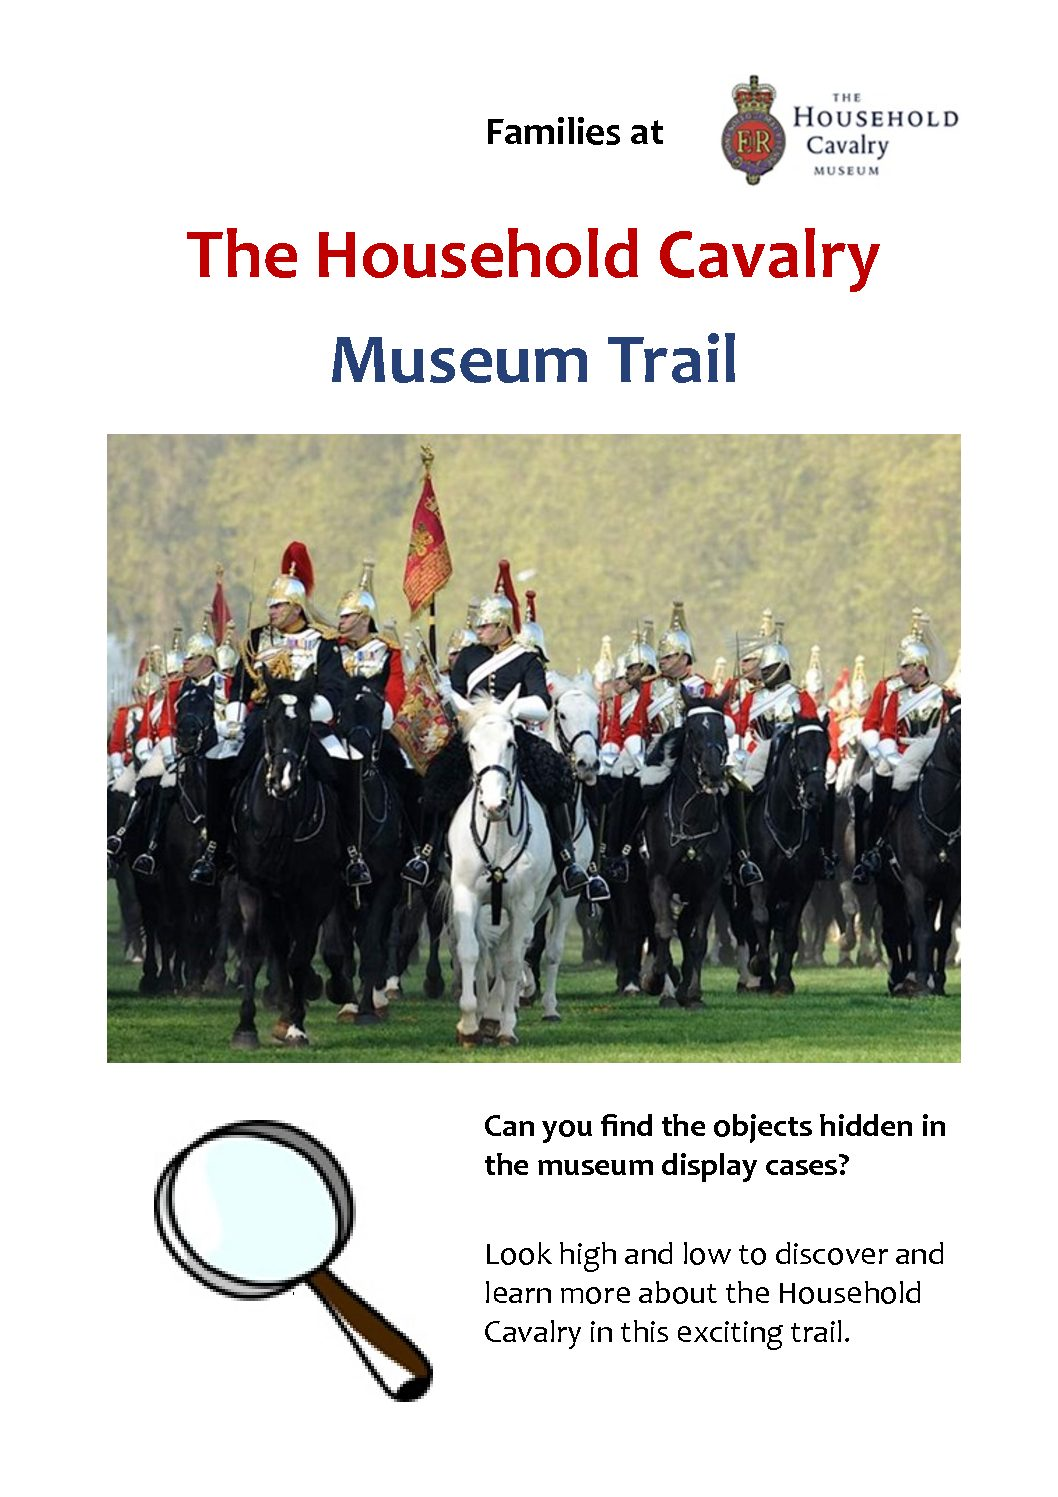 The Household Cavalry Museum Museum Trail